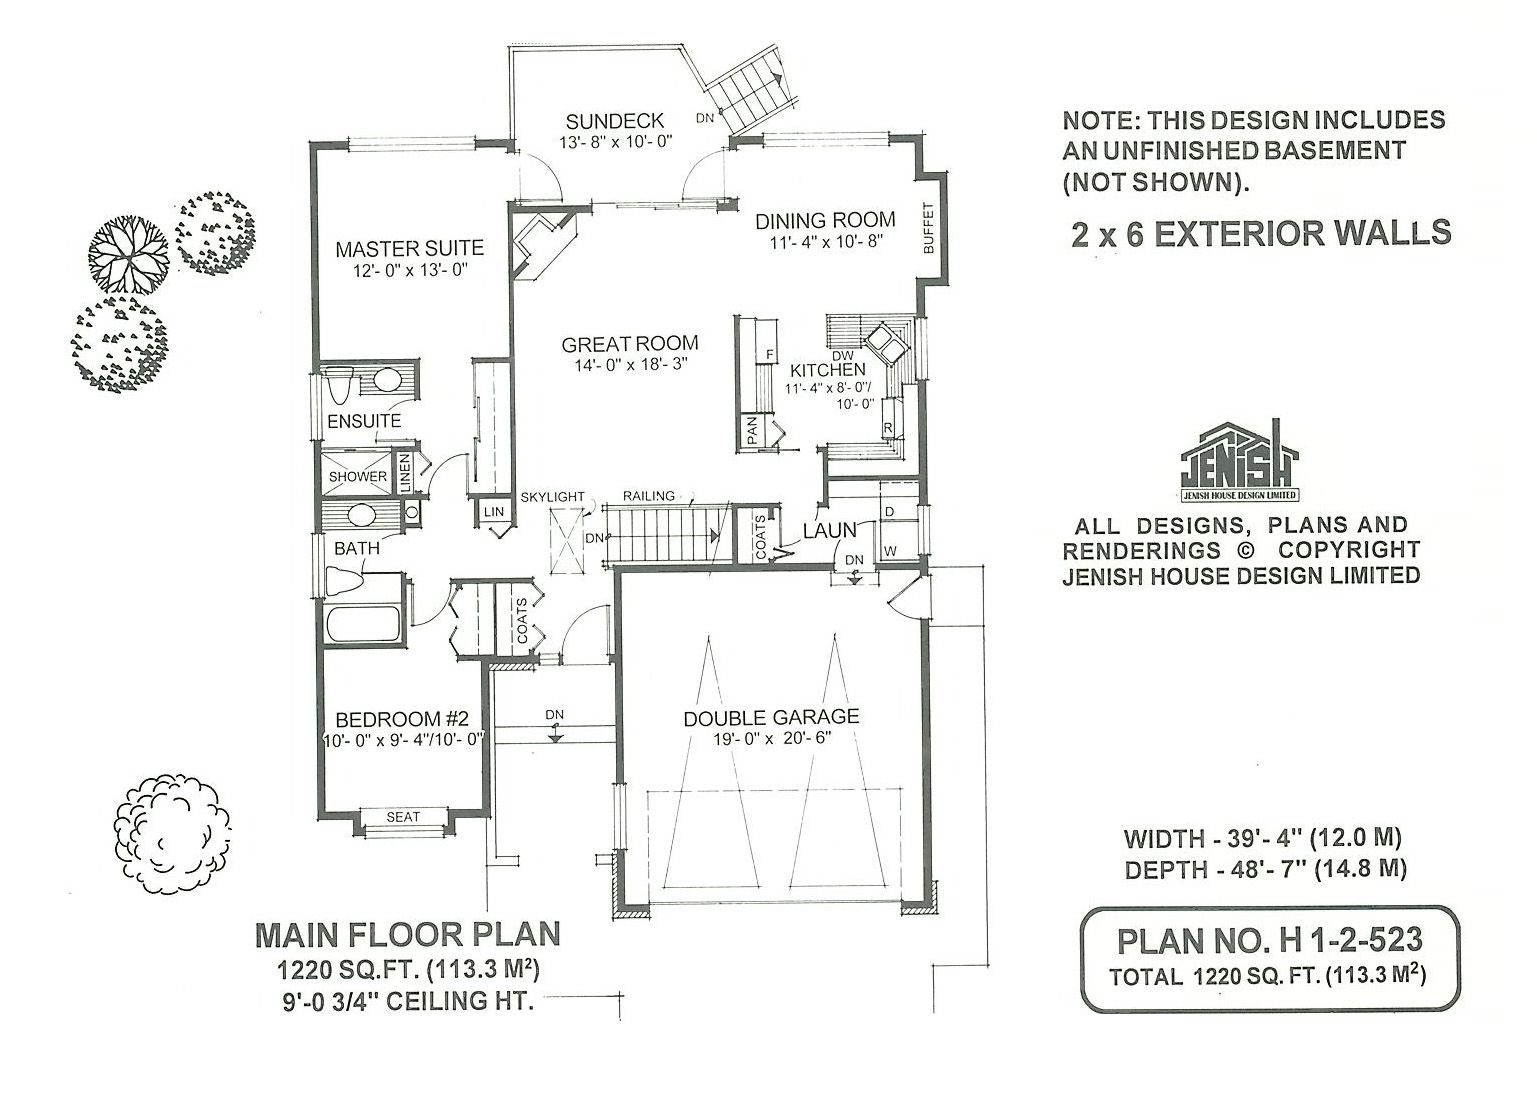 1 2 523 Jenish House Design Limited 2 Bedroom House Plans How To Plan Bedroom House Plans